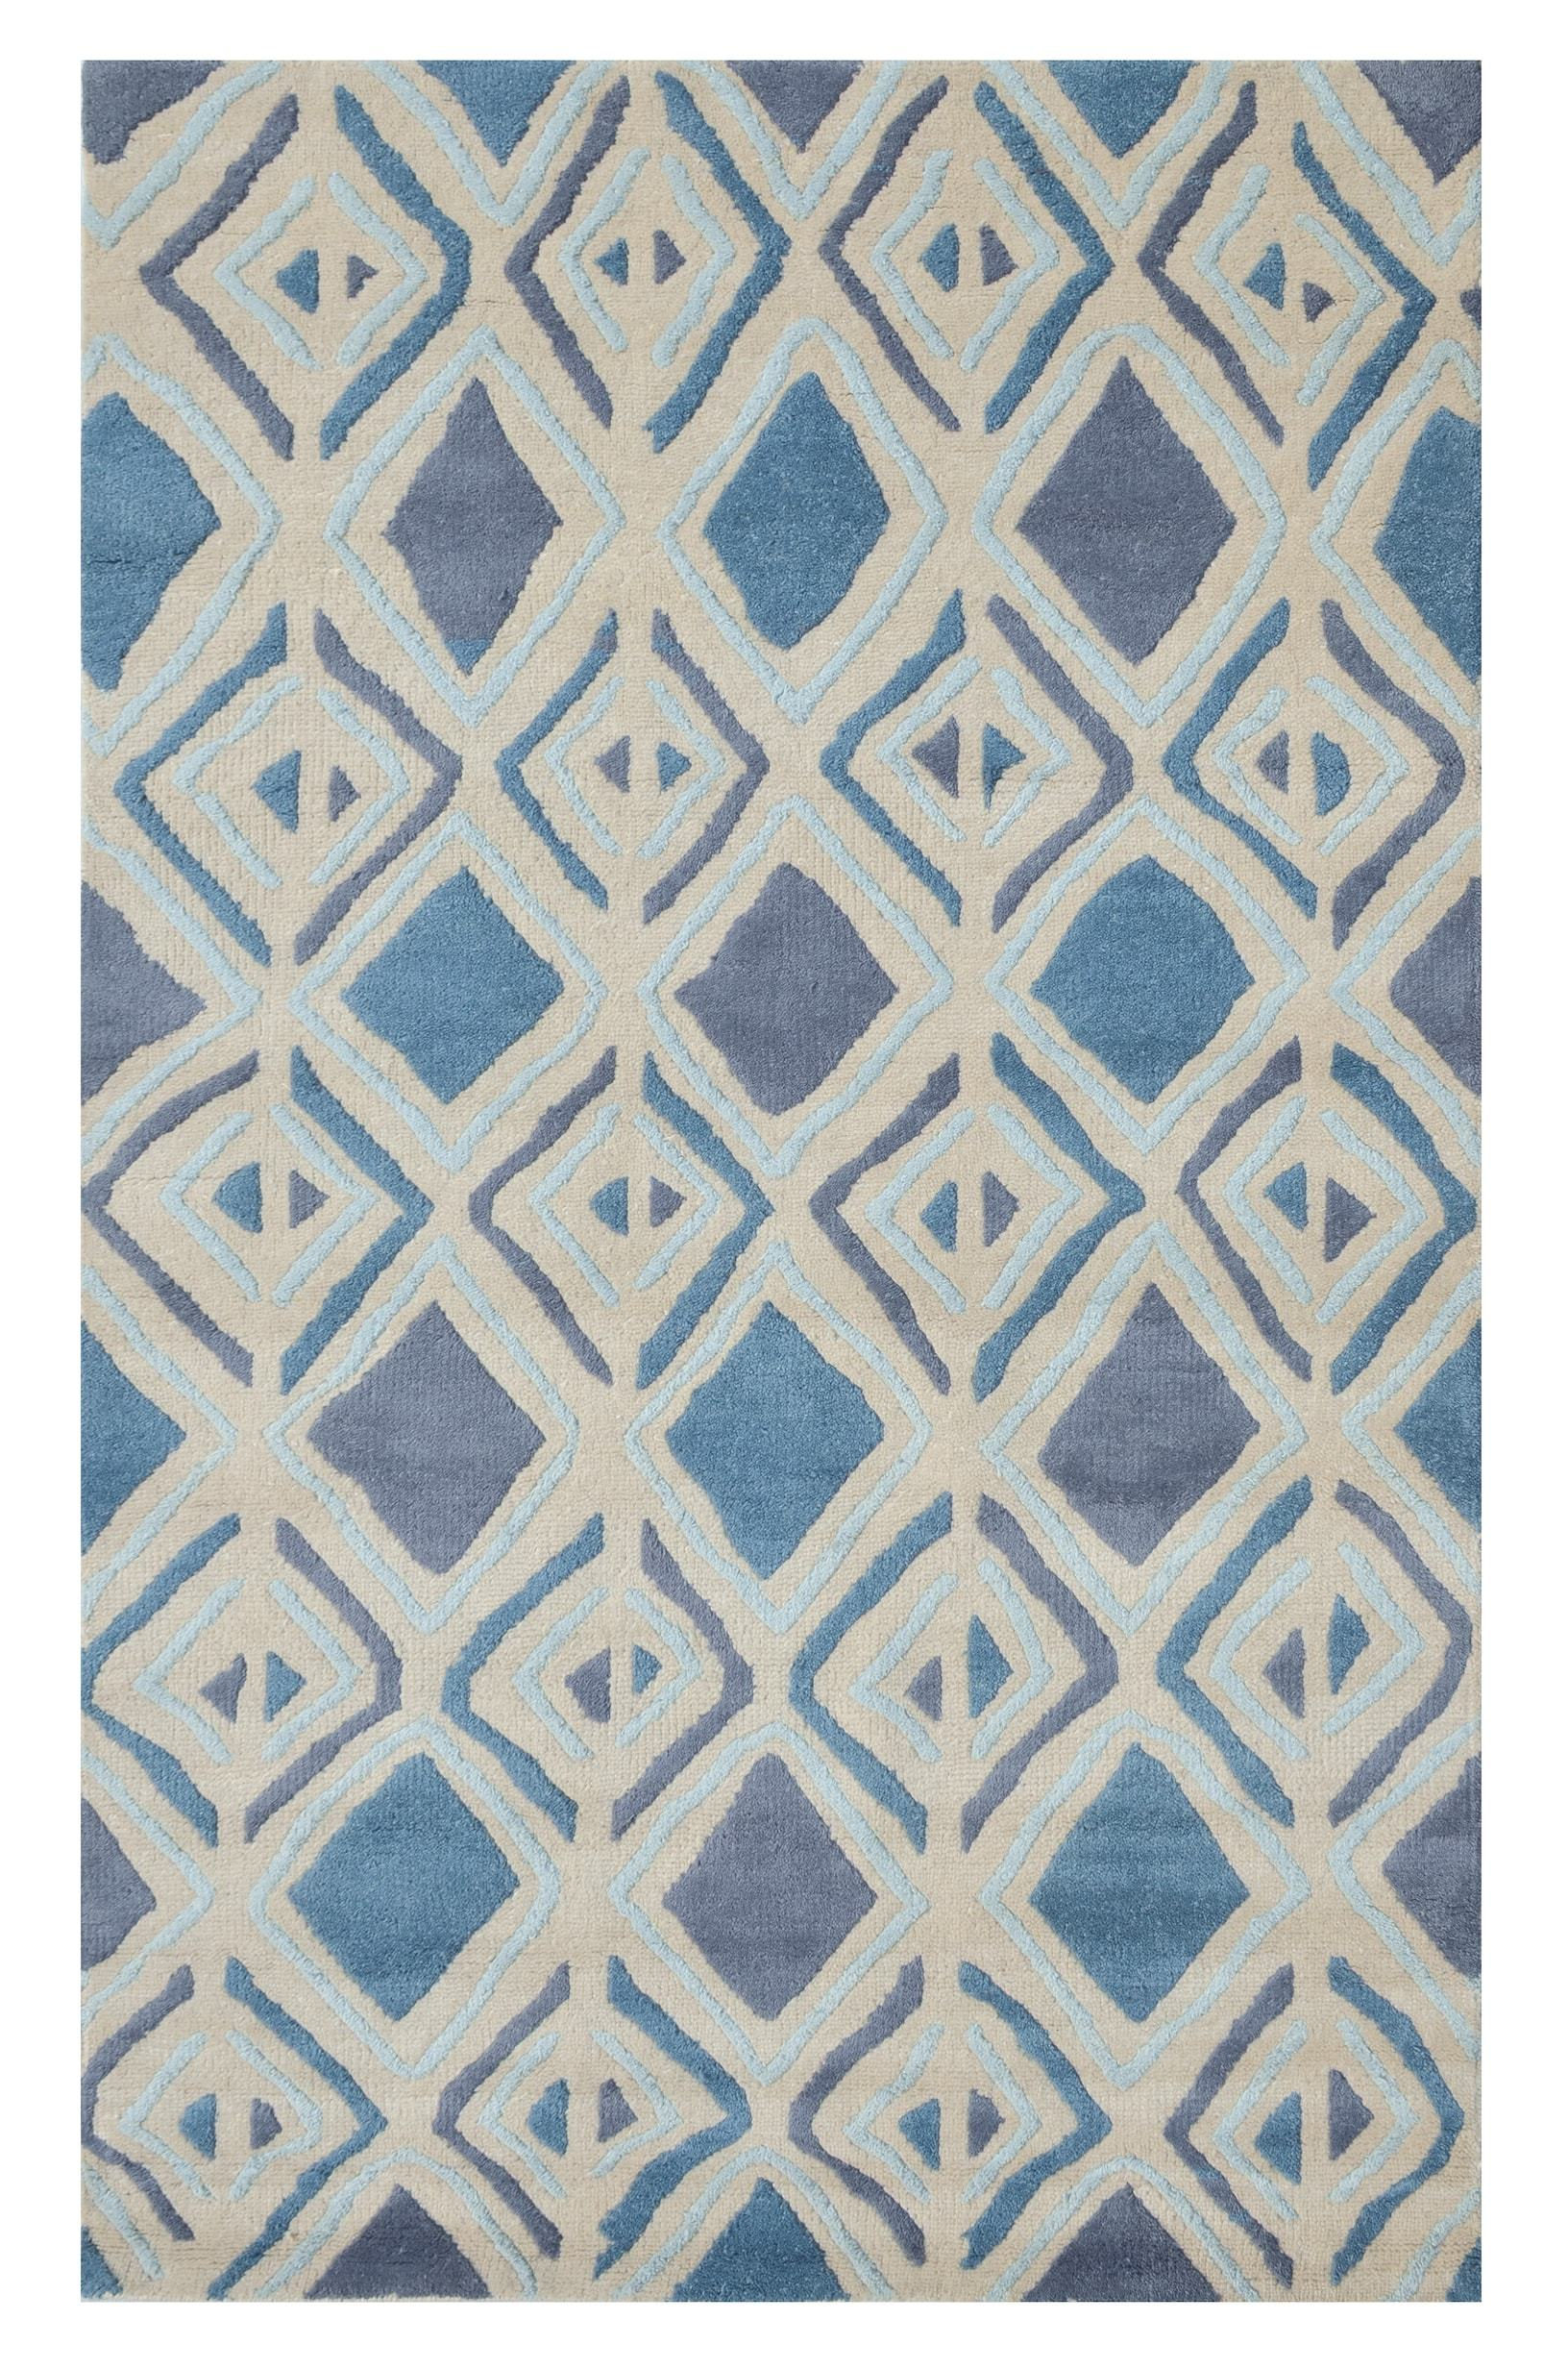 Harriet Hand Knotted Rug by House of Rugs - Home Artisan